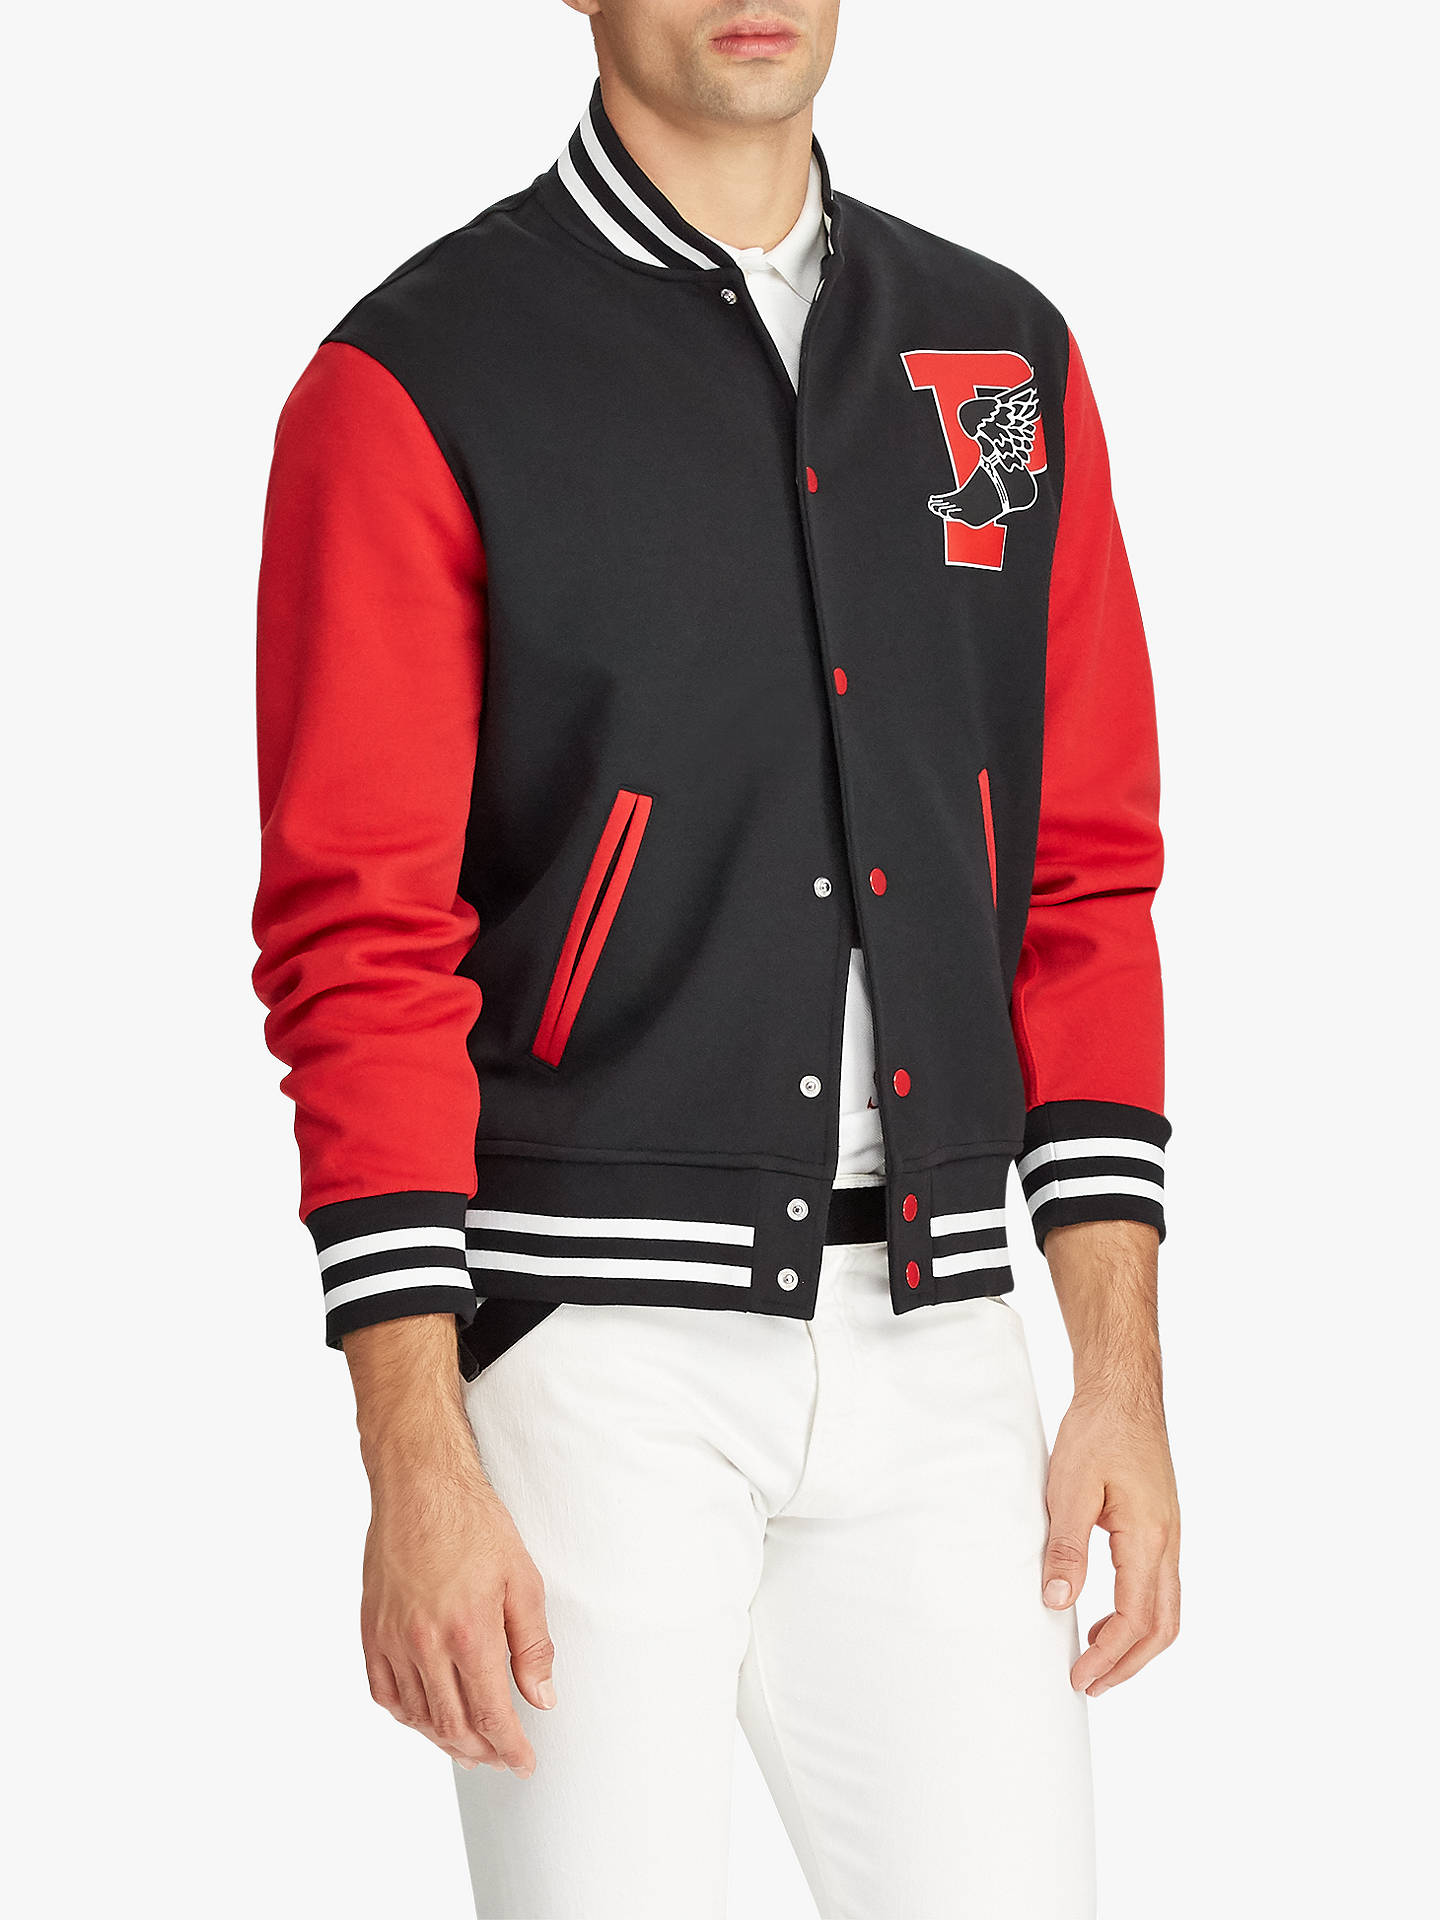 7d91a2f7c Buy Polo Ralph Lauren P-Wing Baseball Jacket